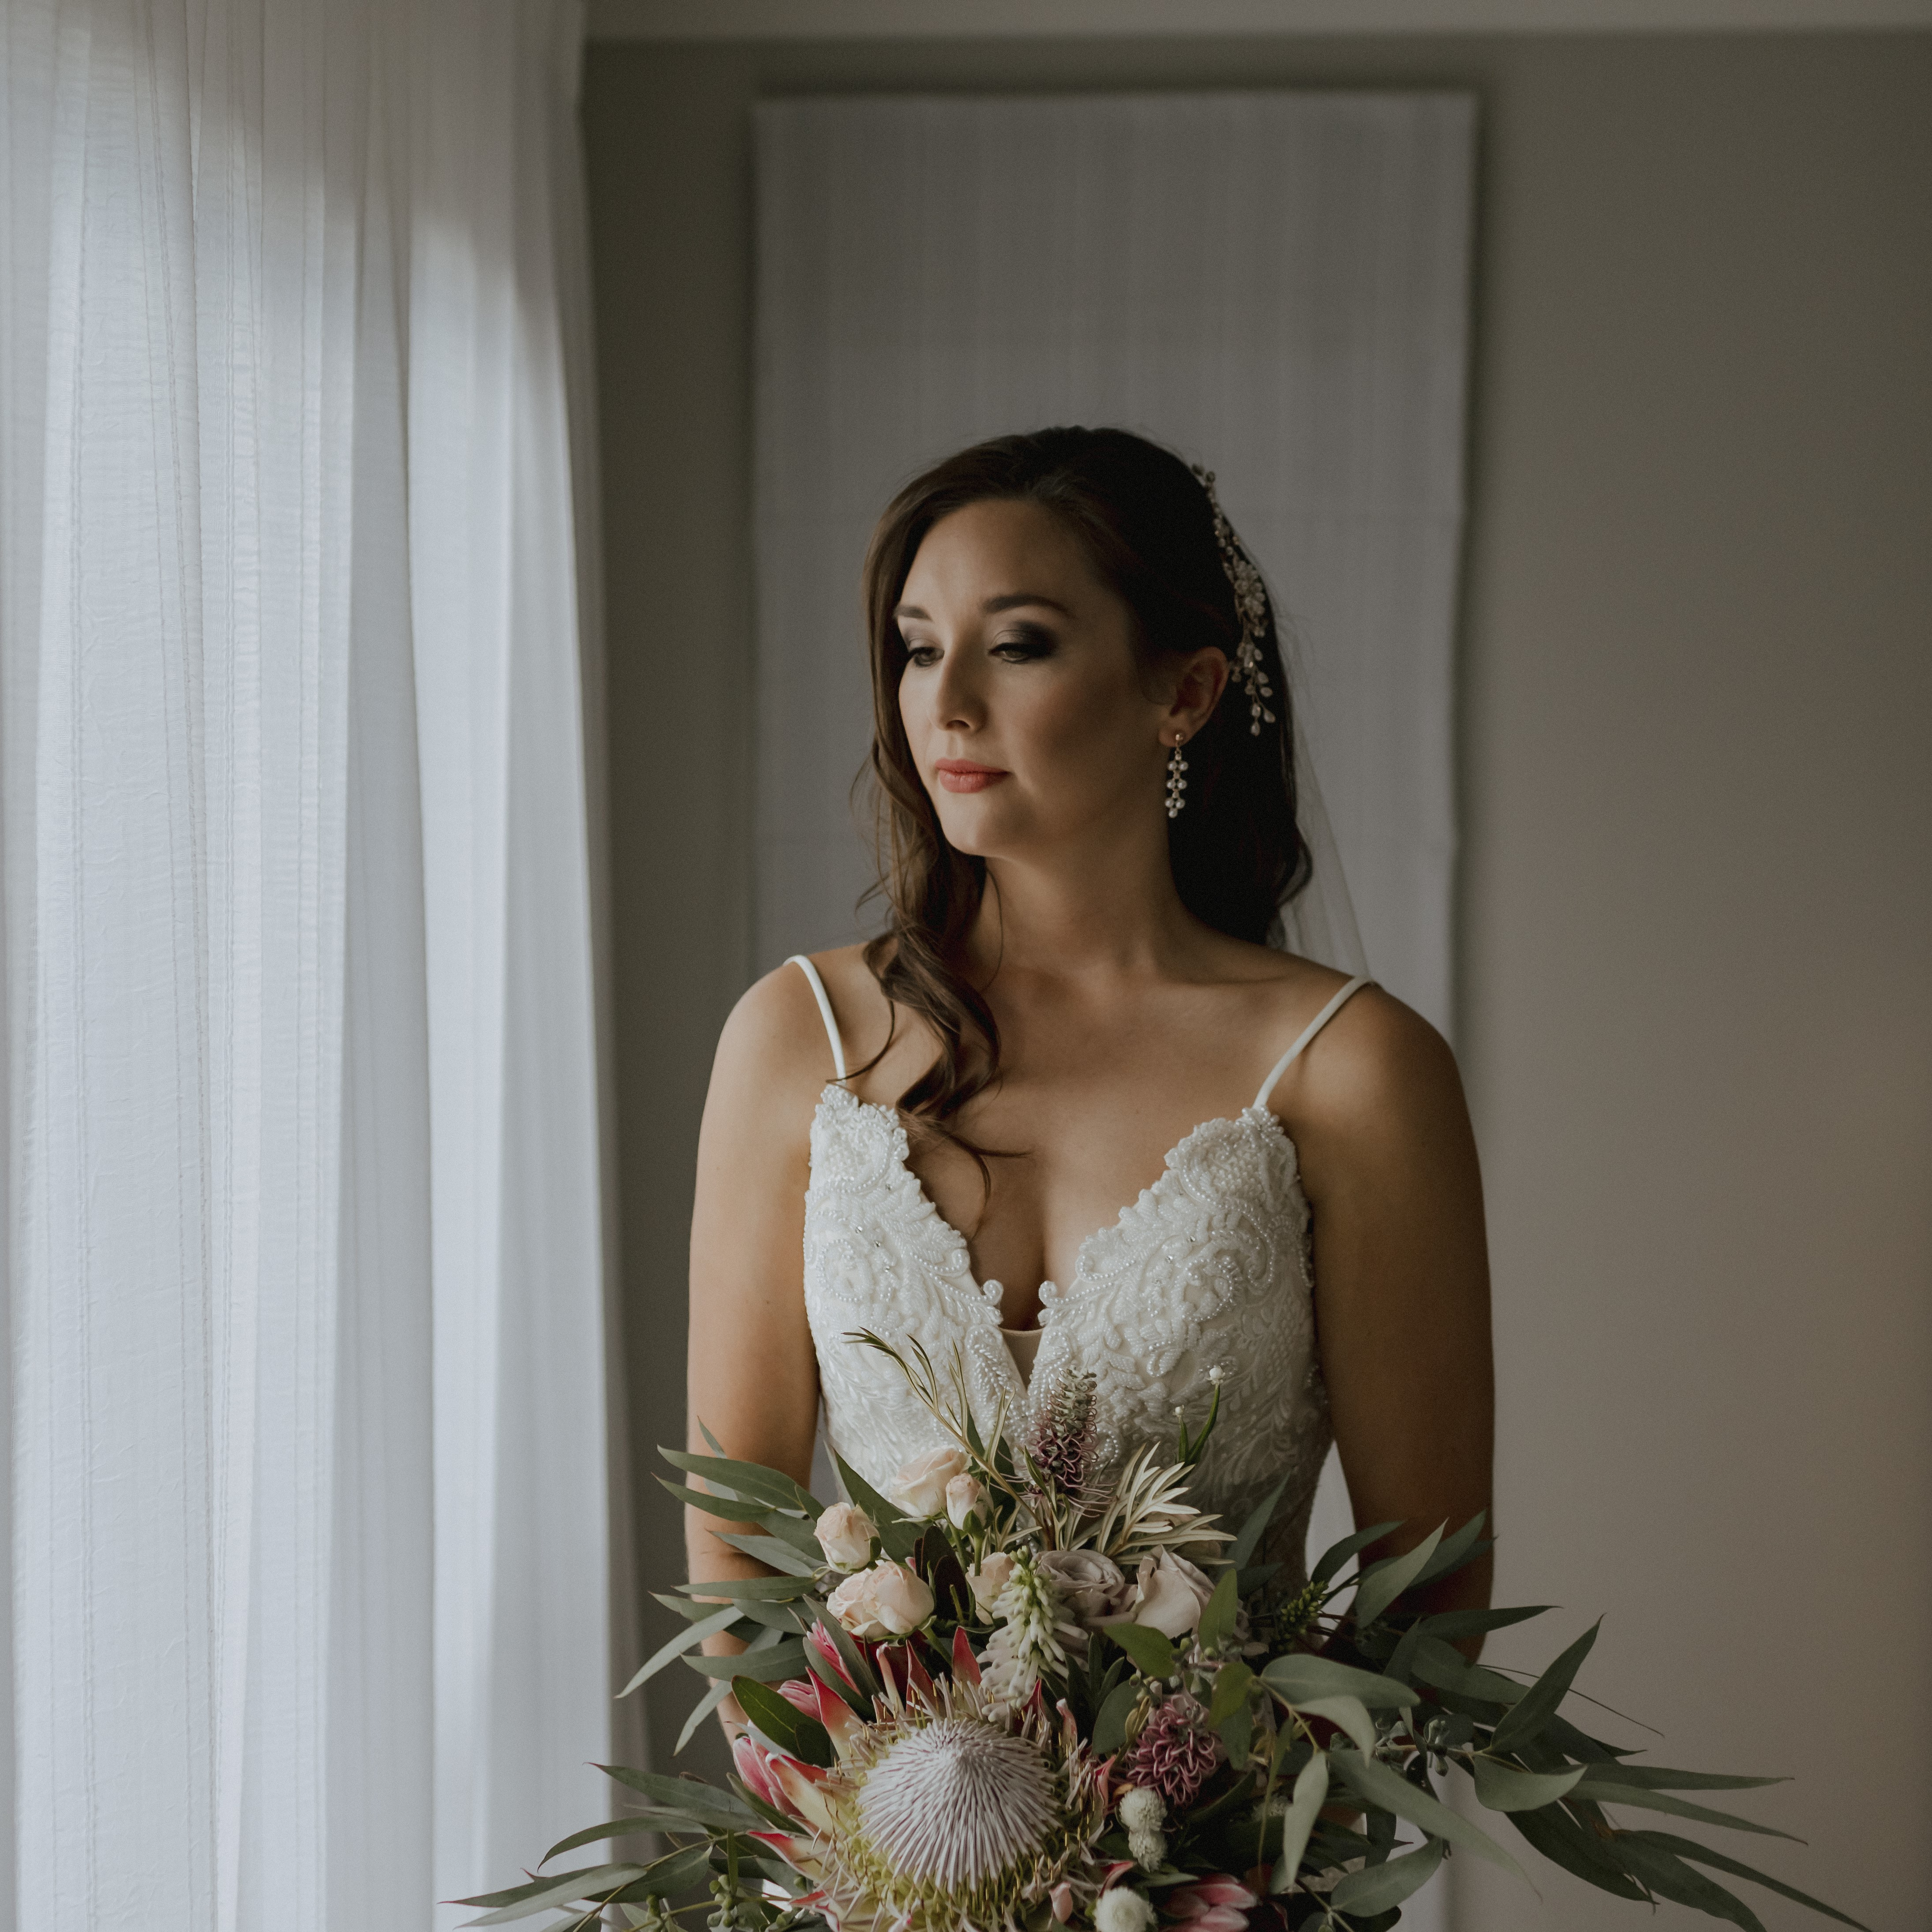 Bride looking down-dark smokey eyes, nude lips and hollywood waves with hair clip-holding her large bouquet